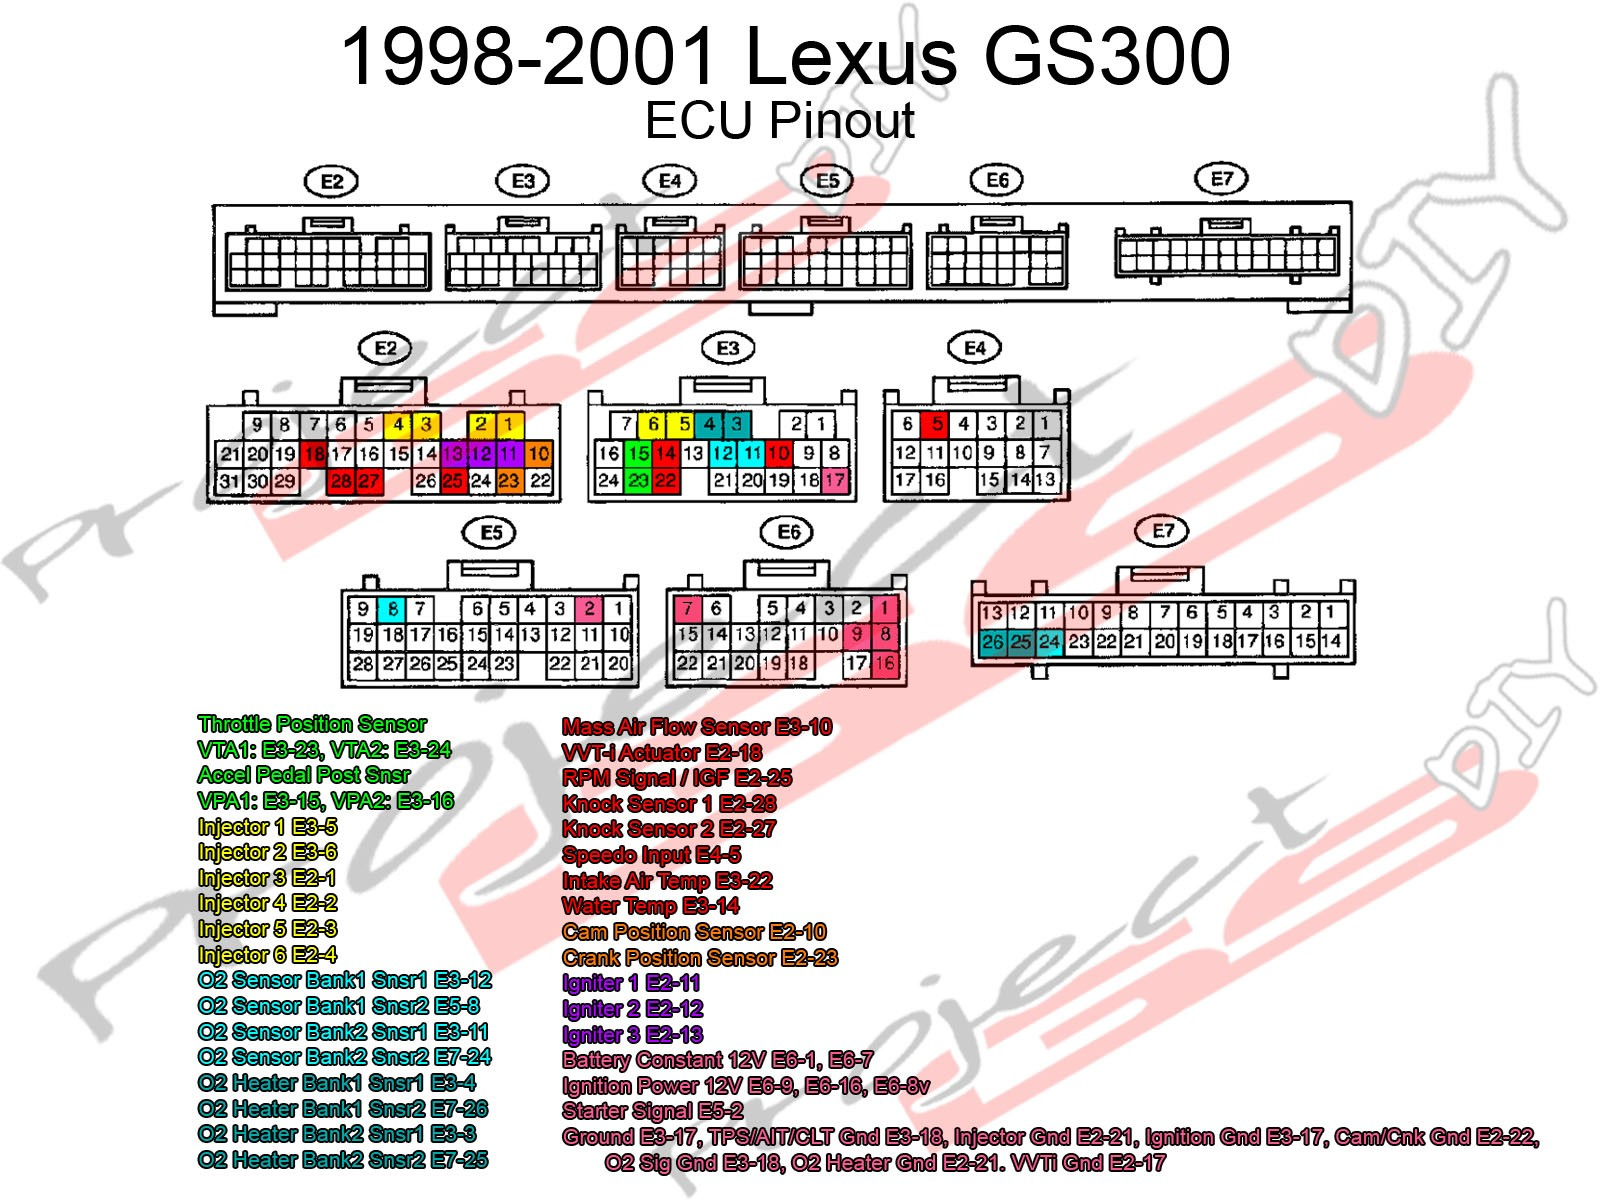 hight resolution of 1997 lexus es300 engine diagram gs300 wiring diagram wiring diagrams schematics of 1997 lexus es300 engine